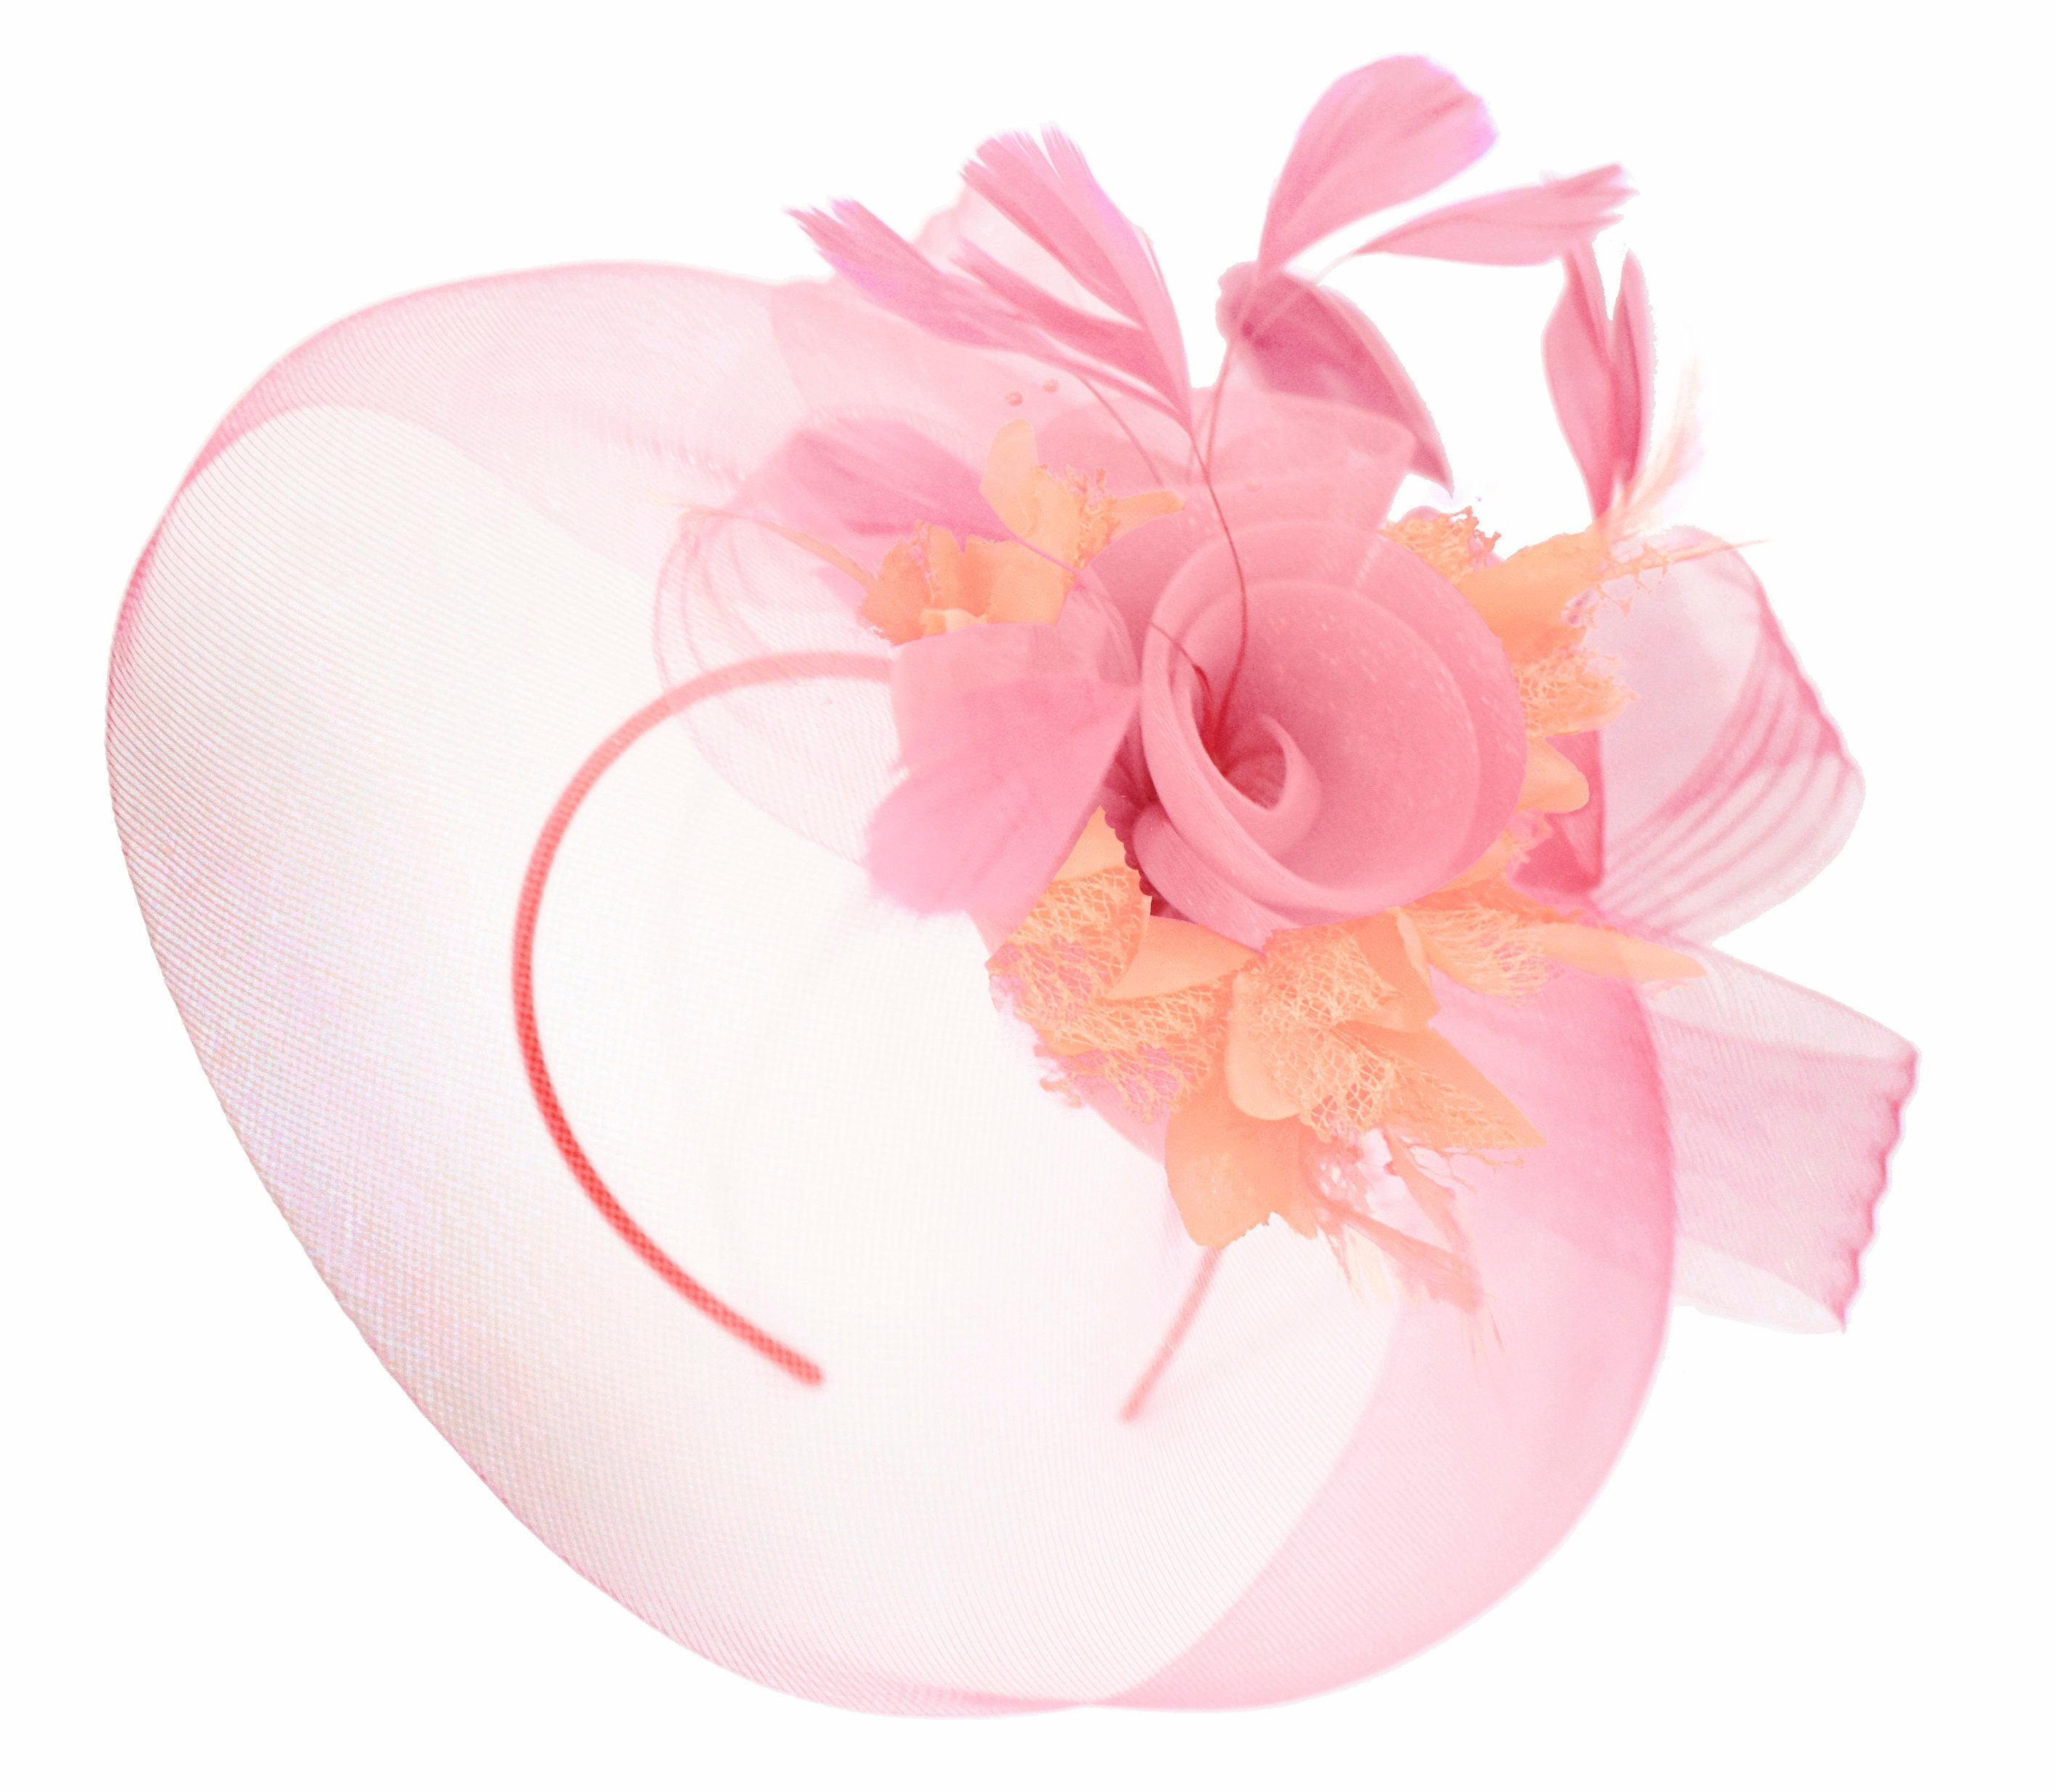 Caprilite Baby Pink and Peach on Headband Veil UK Wedding Ascot Races Hatinator